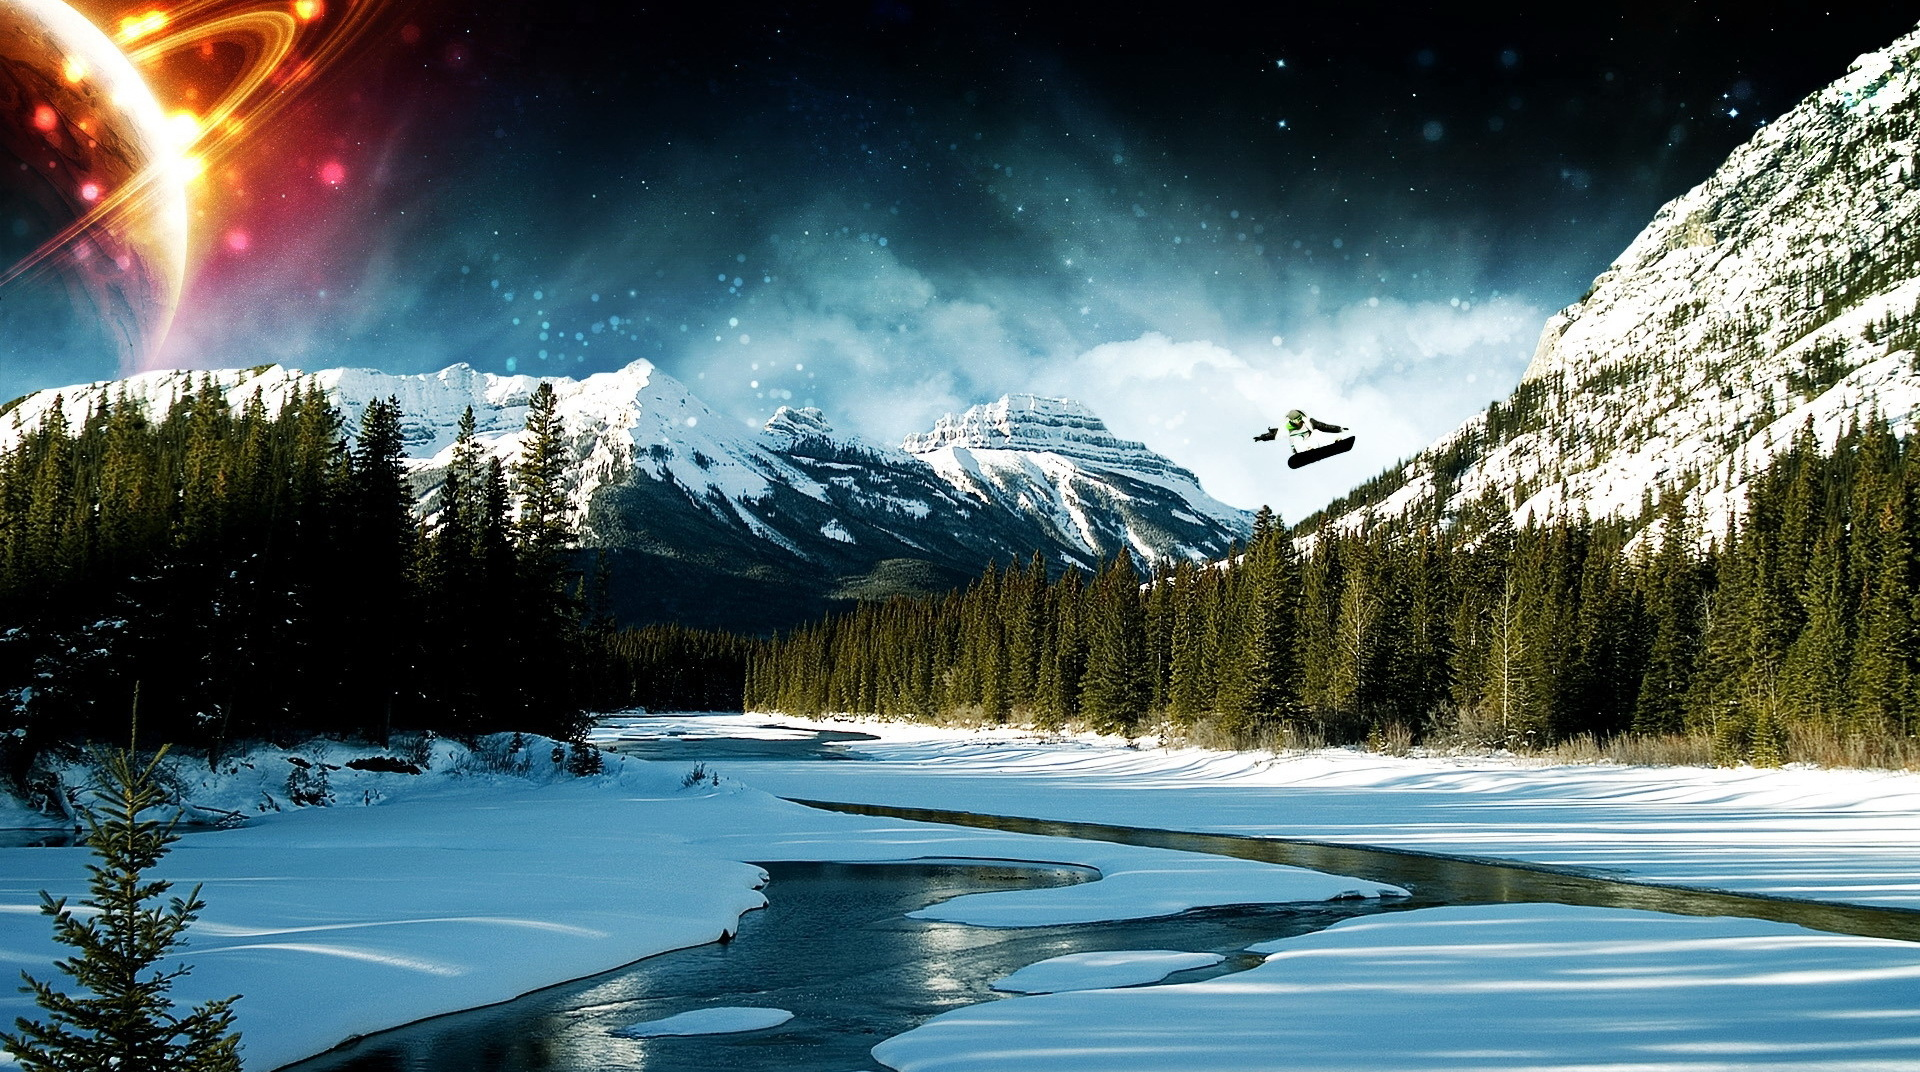 click to free download the wallpaper--Natural Scenery image - A Man in Skate, the Shinning Planet, the River is with Snow, a Clean World! 1920X1080 free wallpaper download